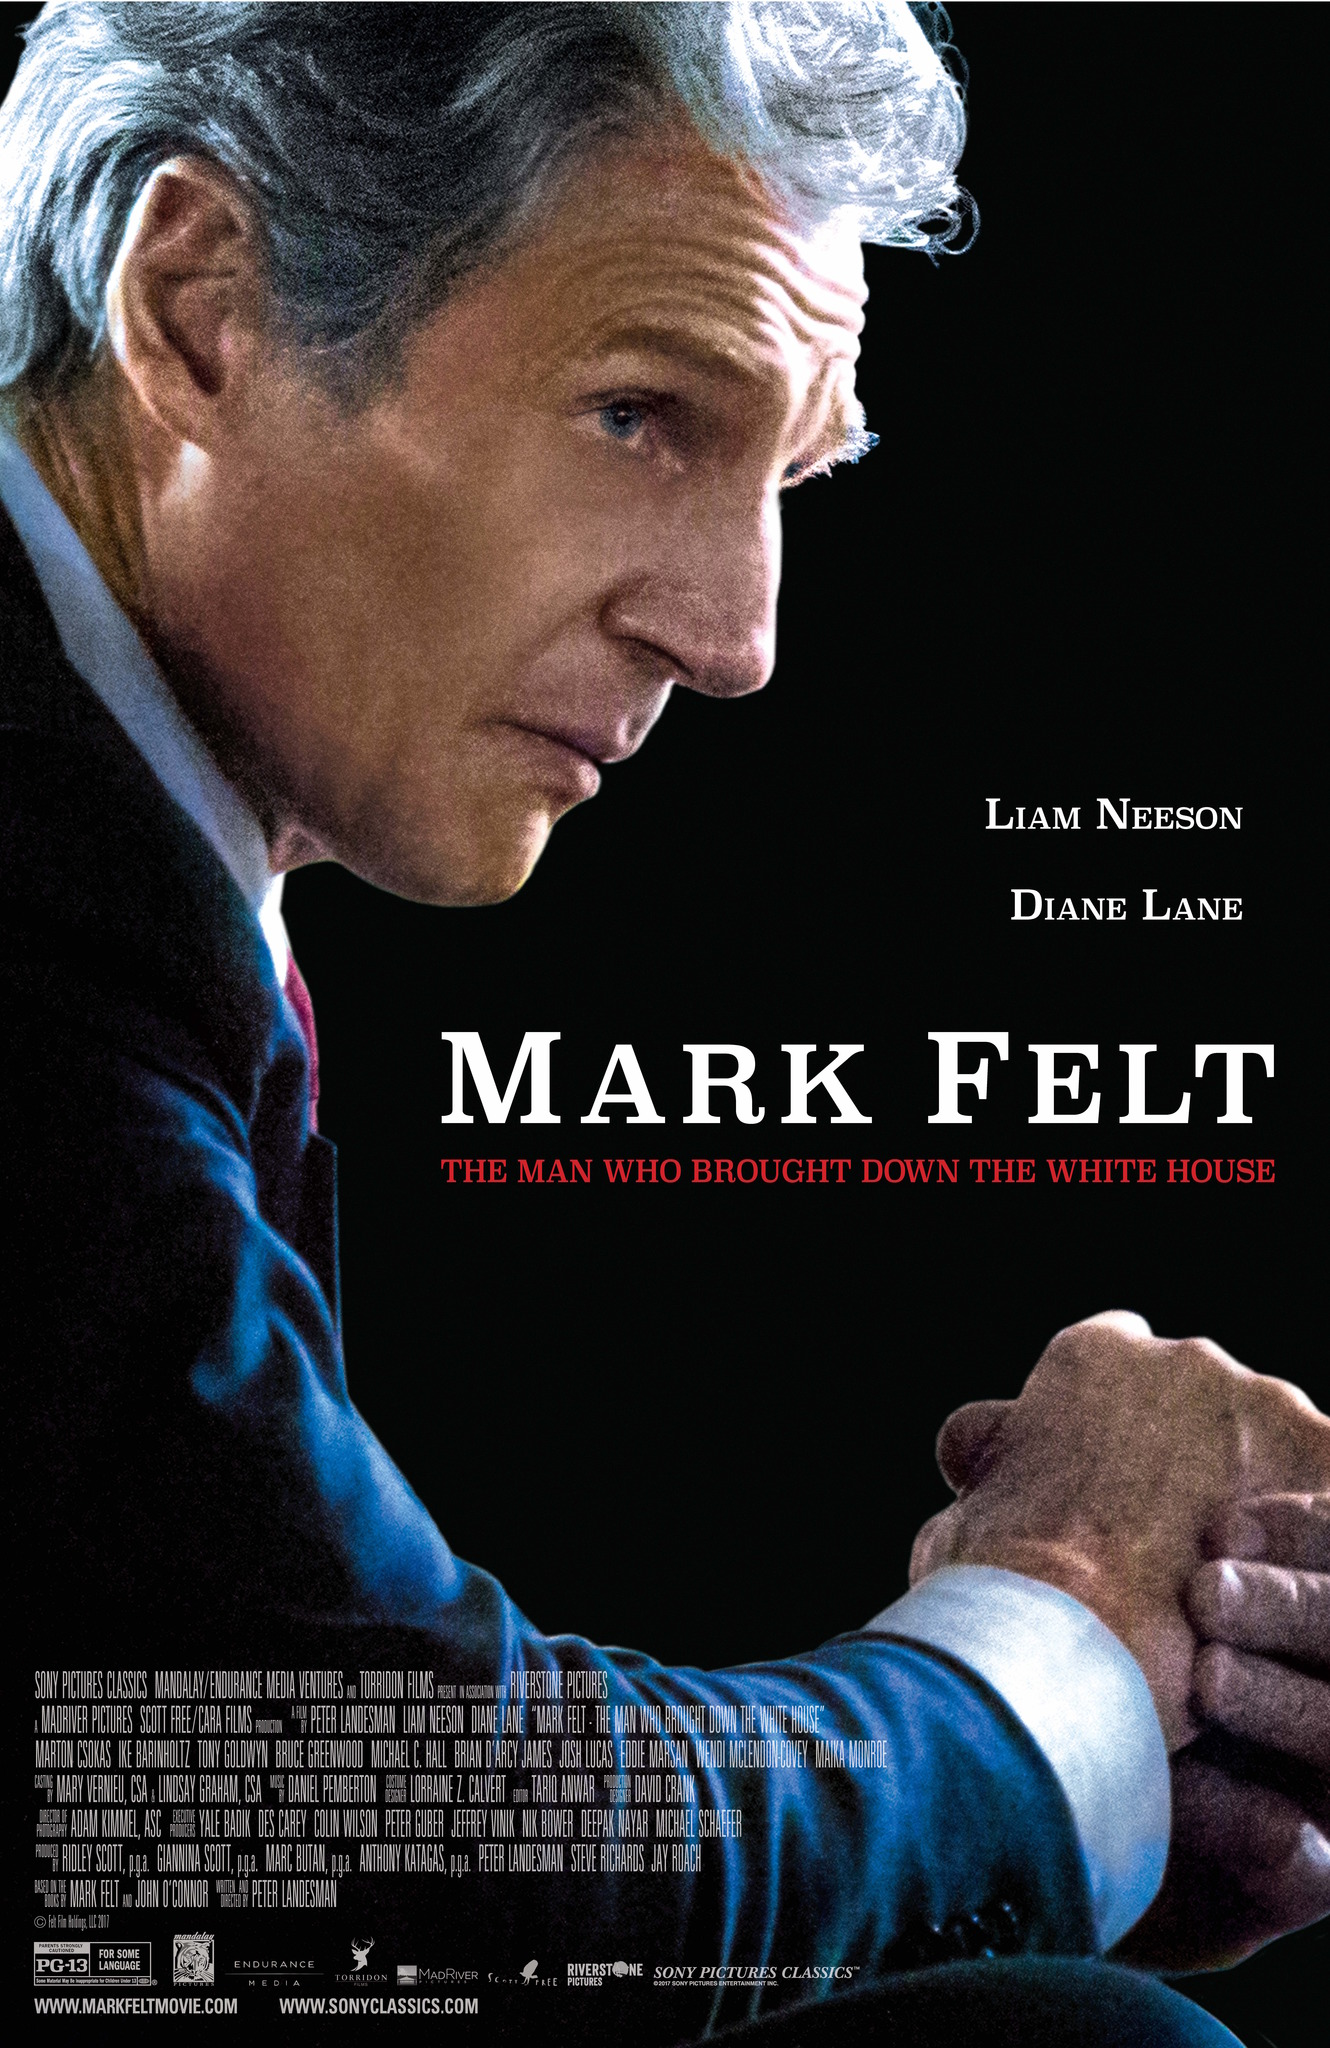 Mark Felt: The Man Who Brought Down the White House (2017) BluRay 480p, 720p & 1080p